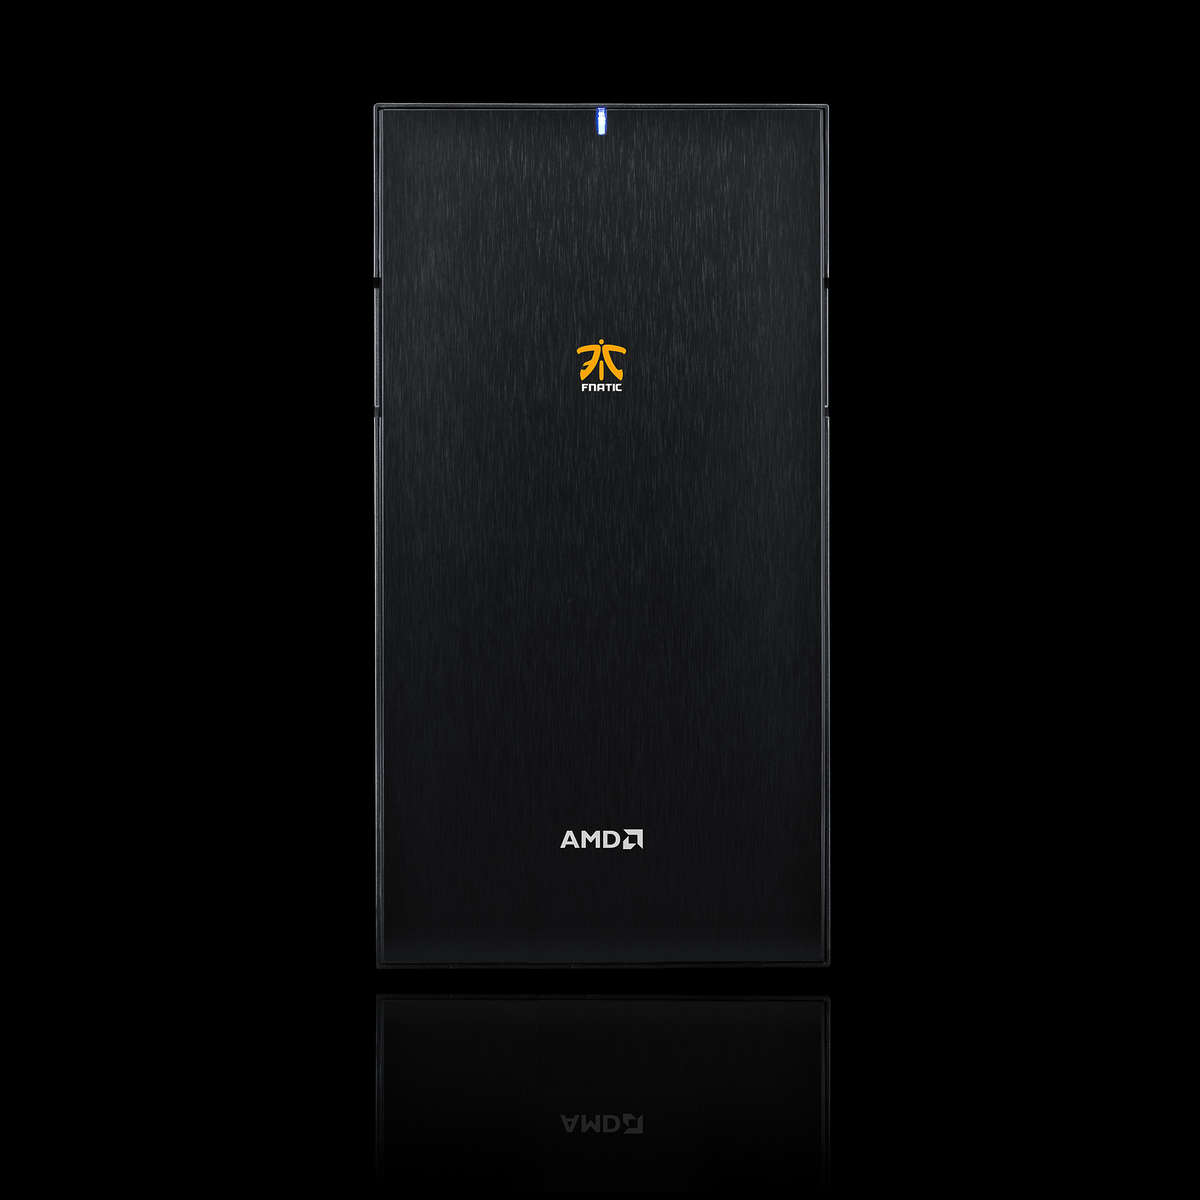 Chillblast Fnatic Official RX 480 Gaming PC